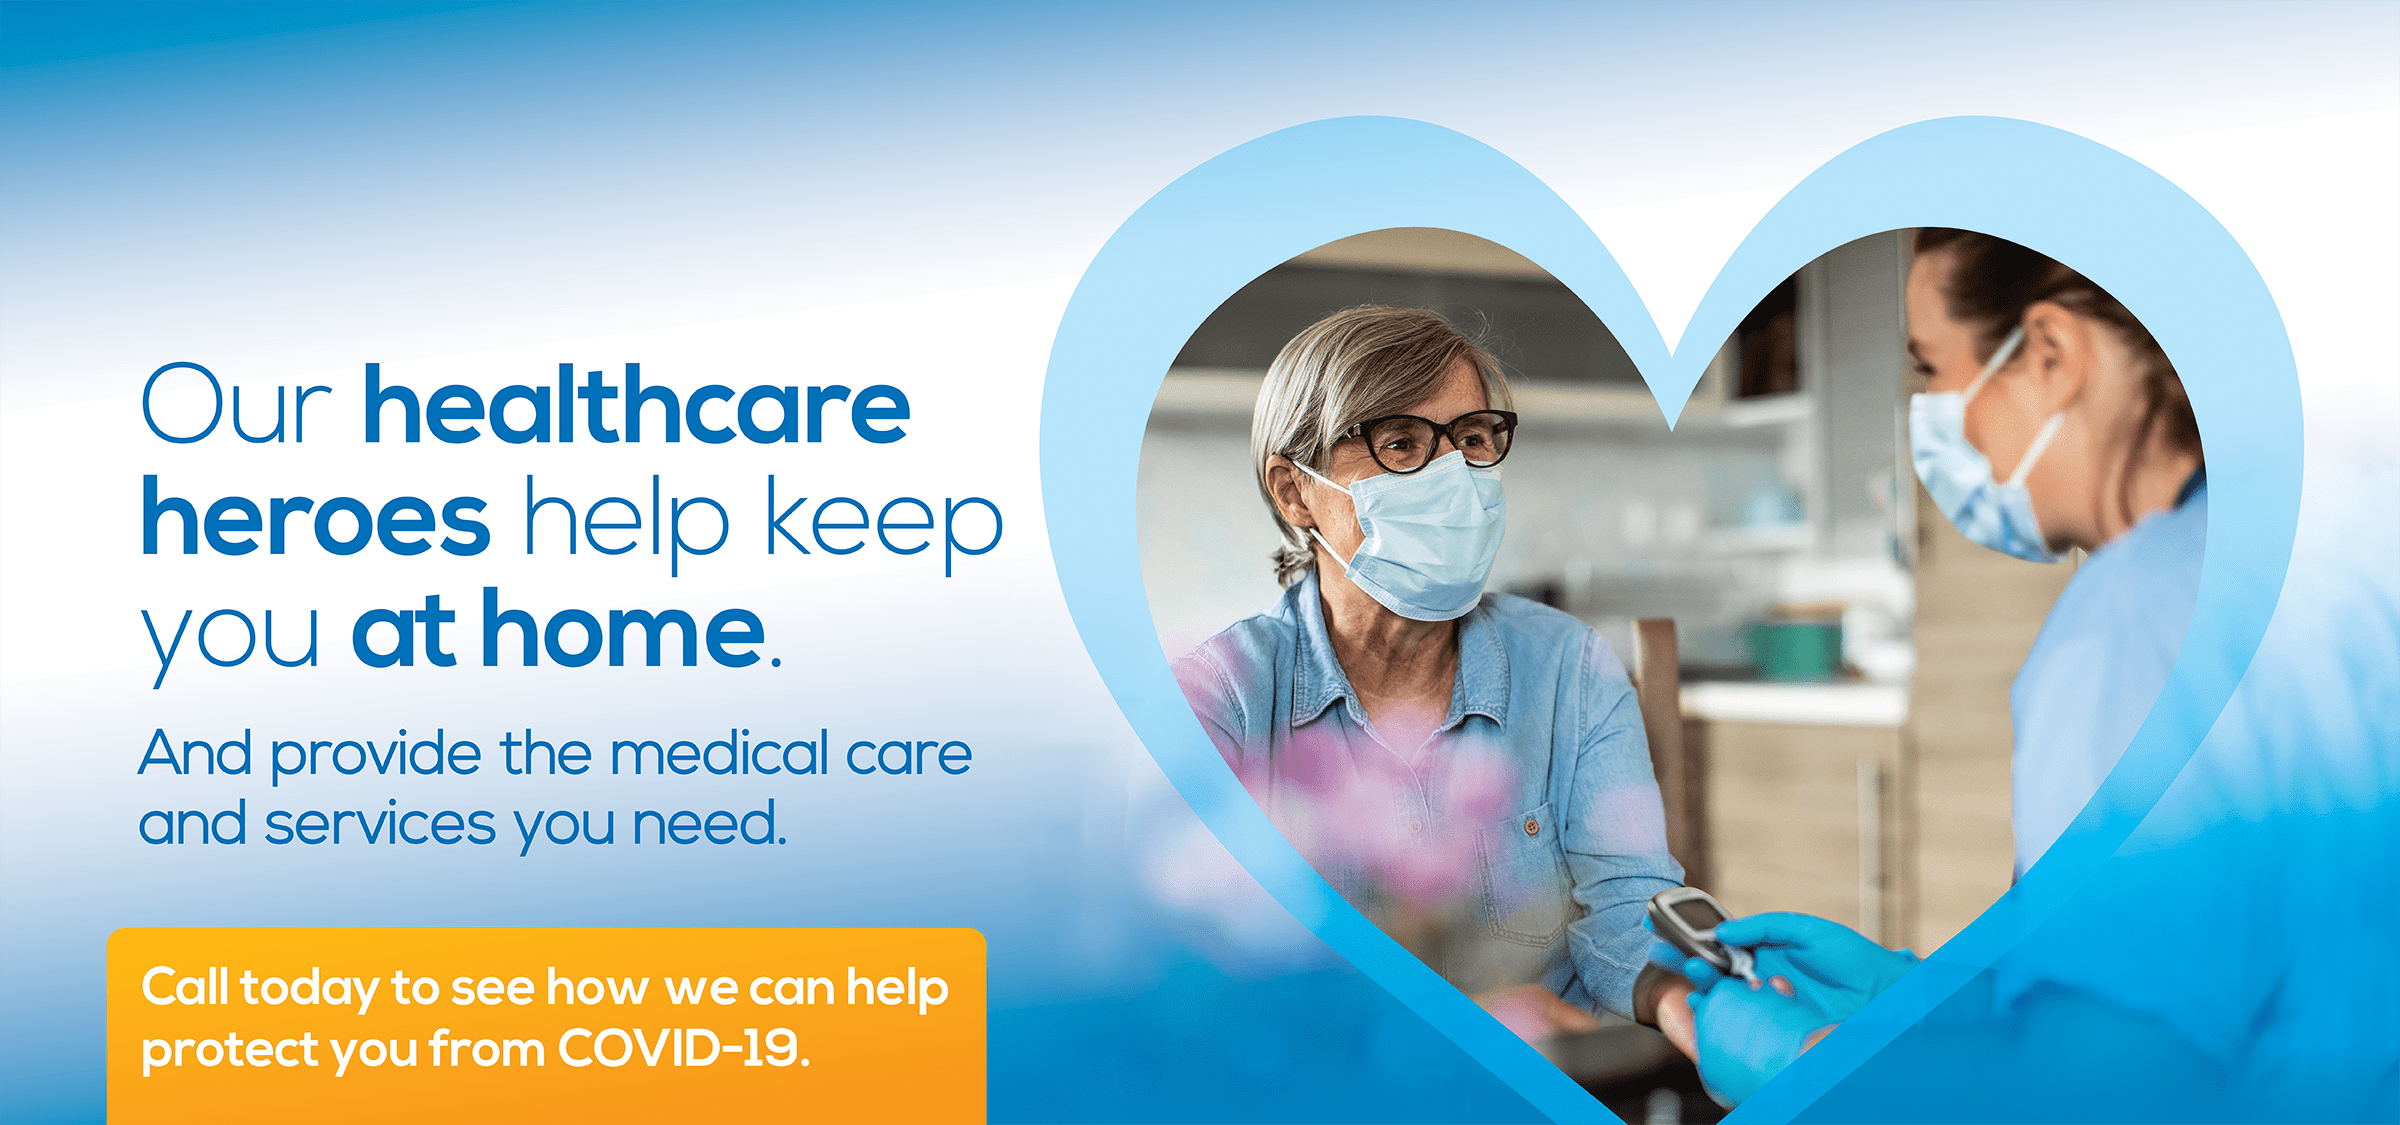 Our healthcare heroes help keep you at home. And provide the medical care and services you need.